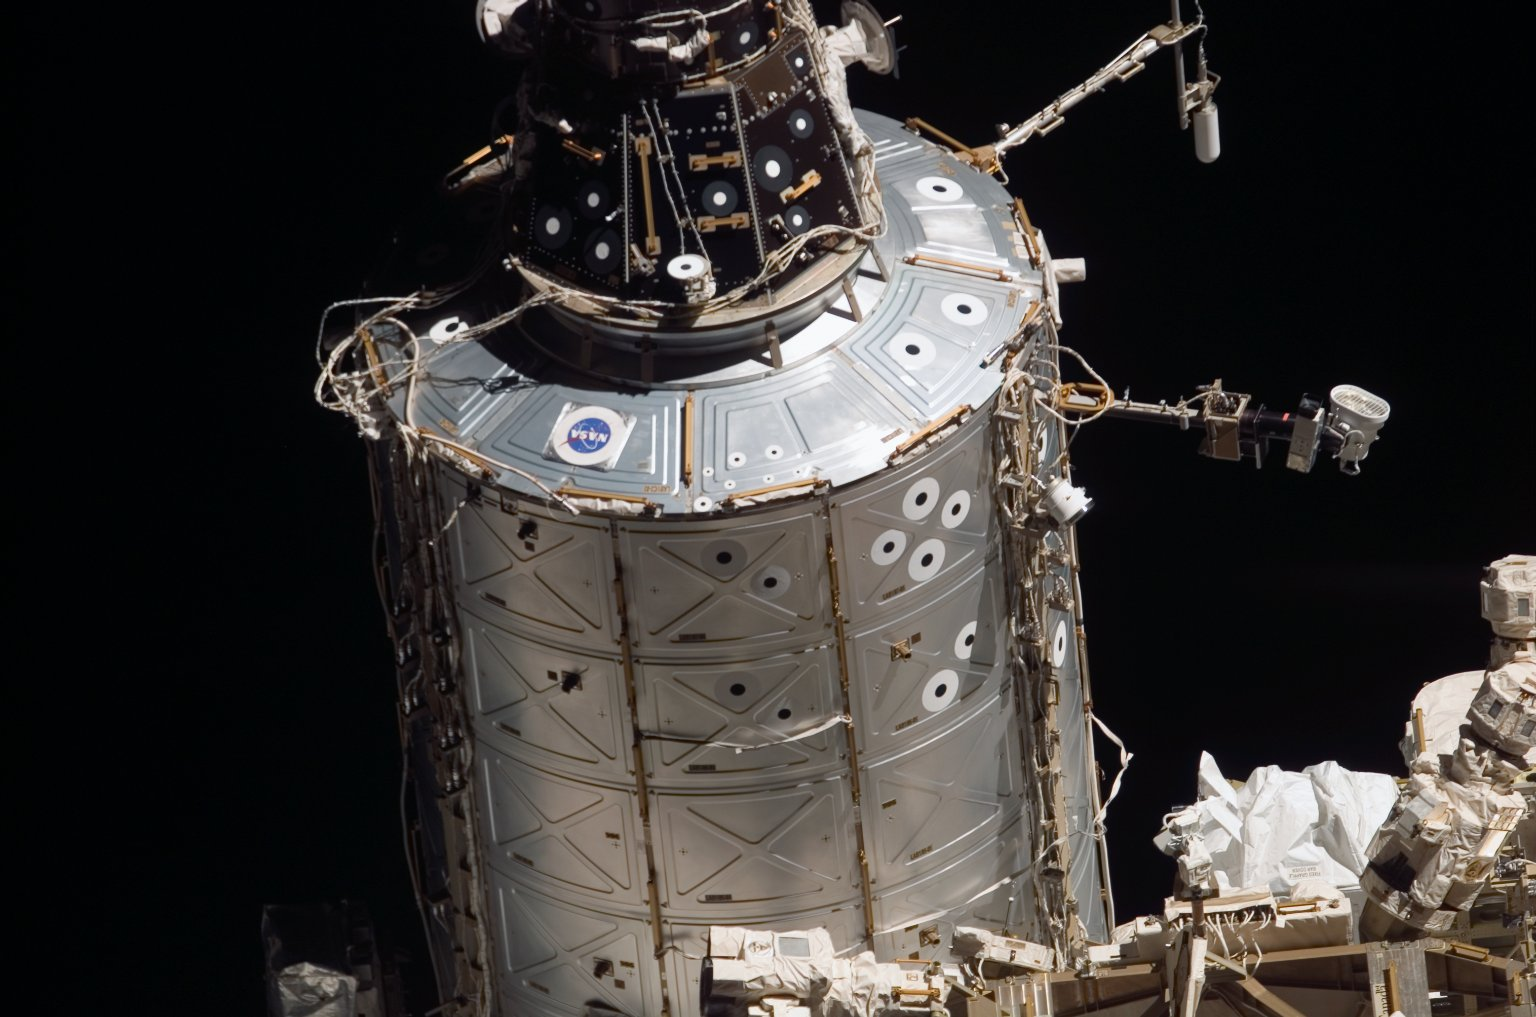 View of the U.S. Lab taken from the orbiter after undocking from the ISS during STS-121